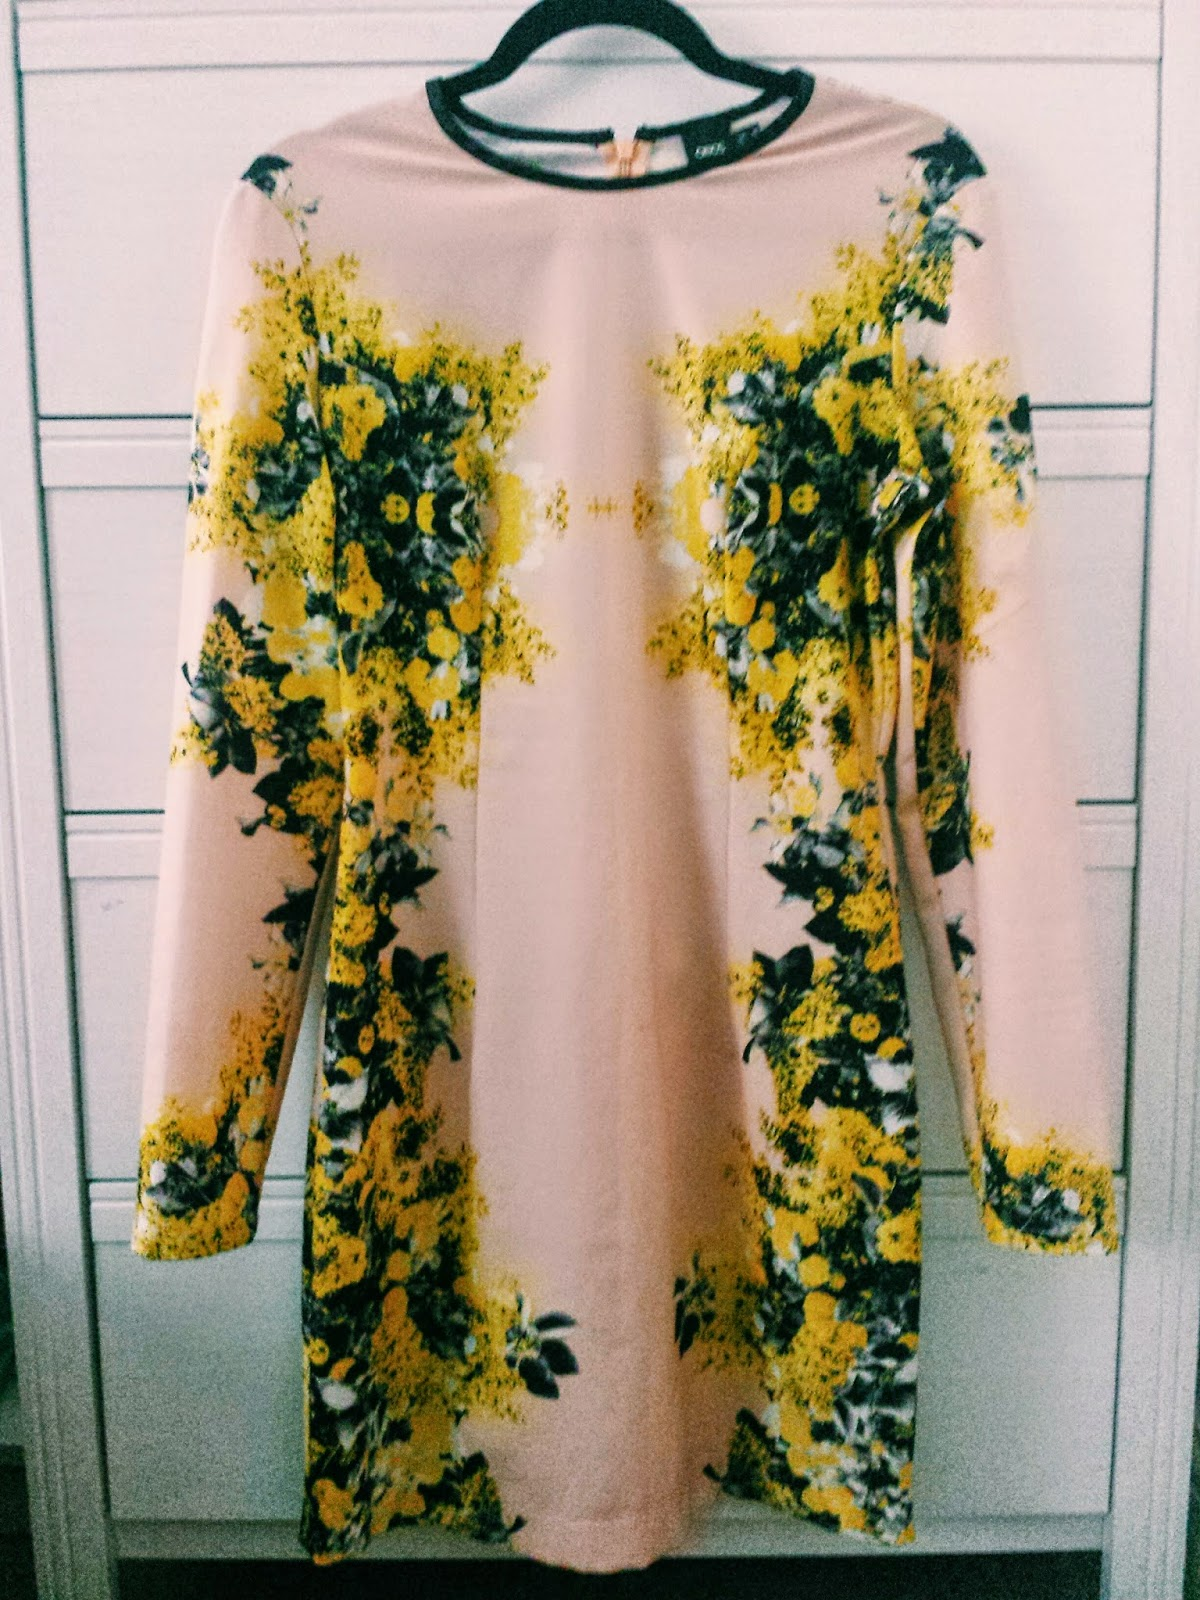 ASOS Nude & Yellow Floral Bodycon Dress